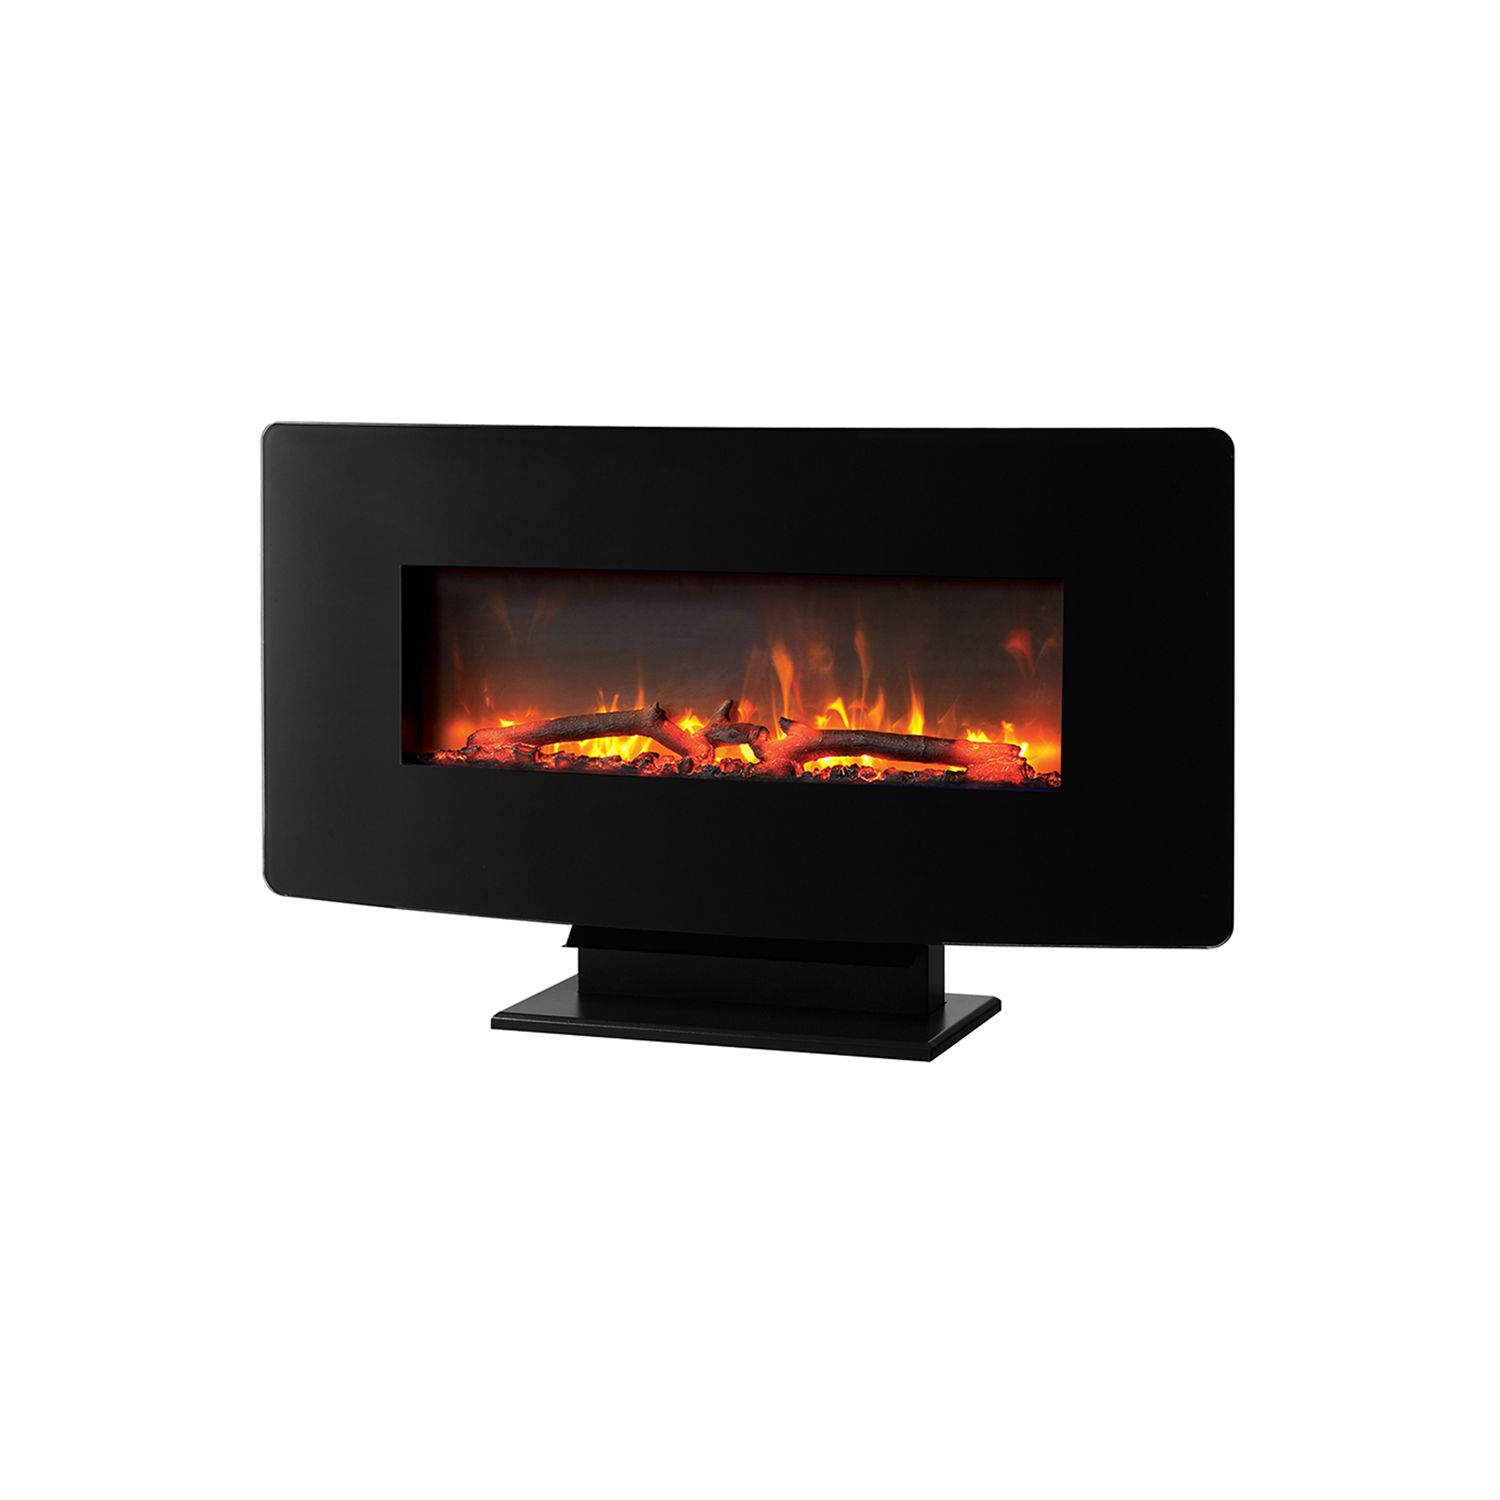 Creative muskoka electric fireplace for home furniture with muskoka electric fireplace insert